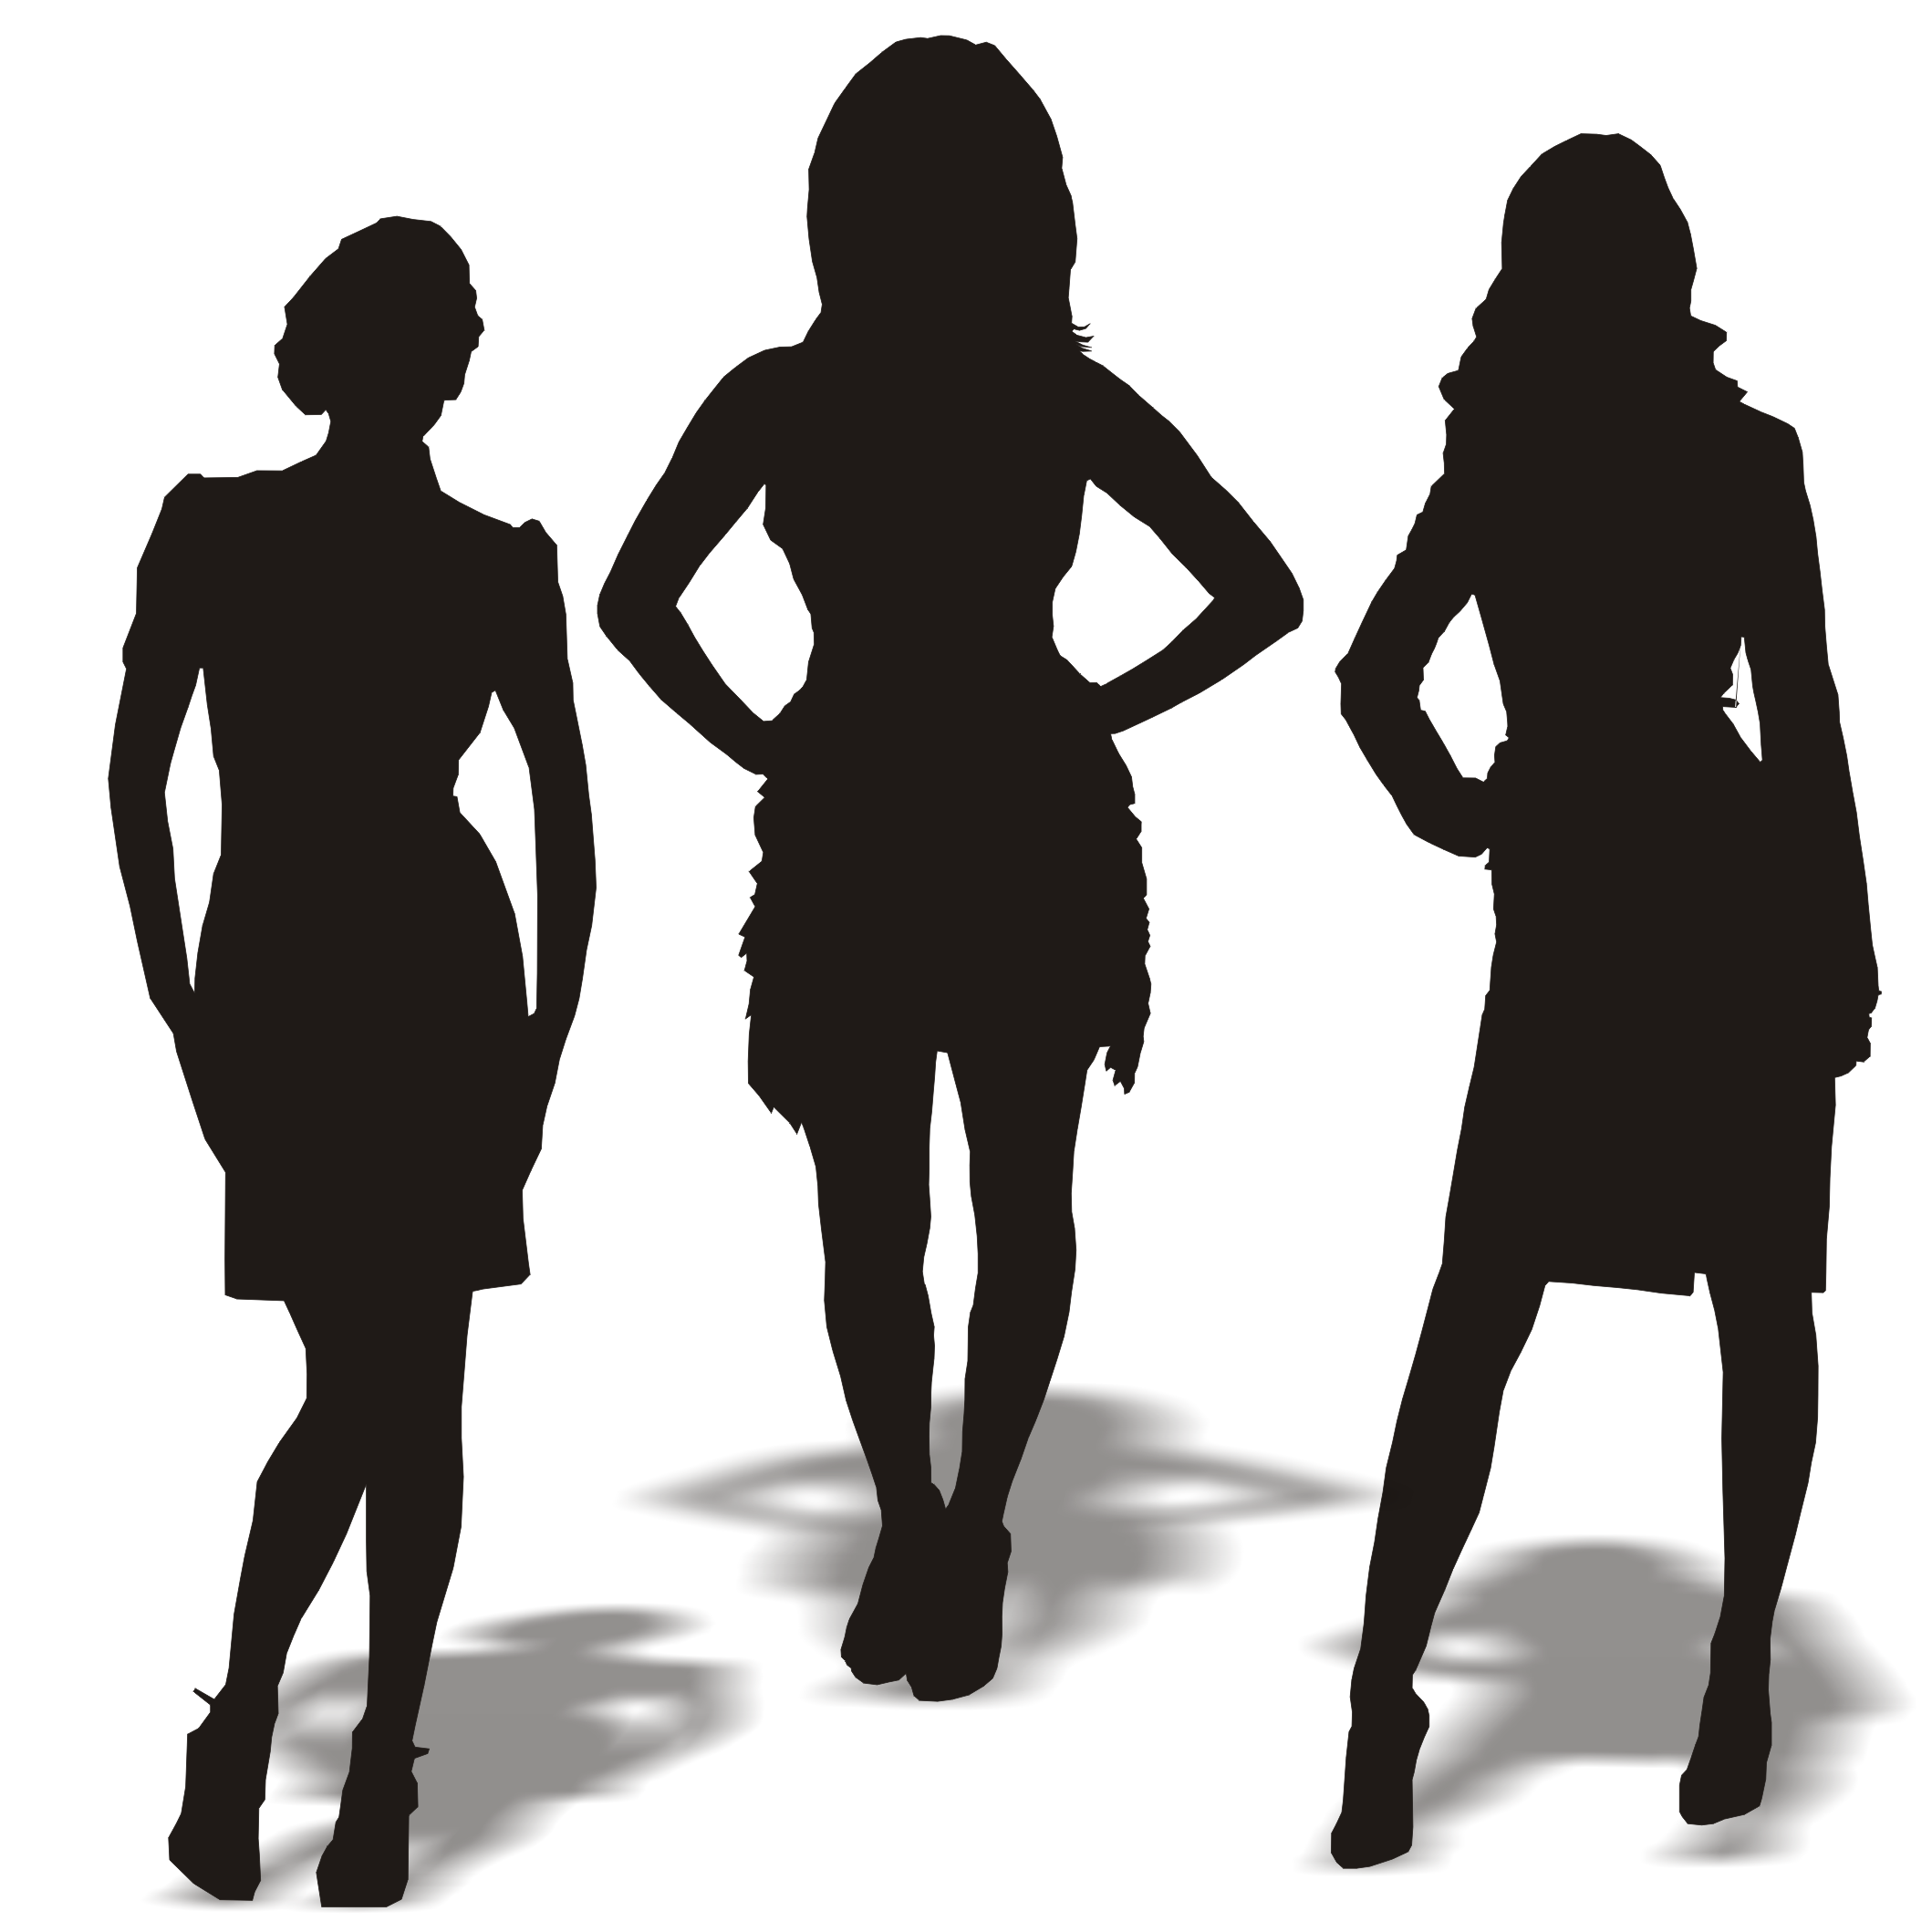 15 Woman Silhouette Vector Images